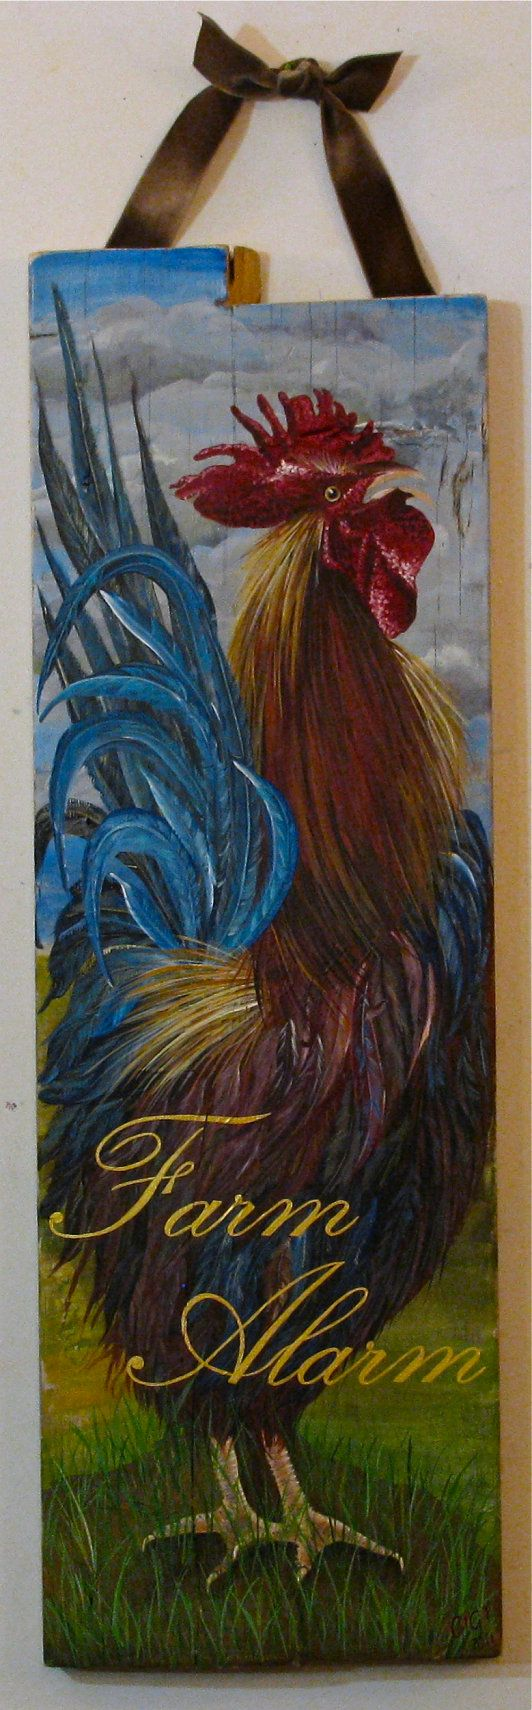 Rooster original acrylic  painting on by johnandgigiathome on Etsy, $400.00